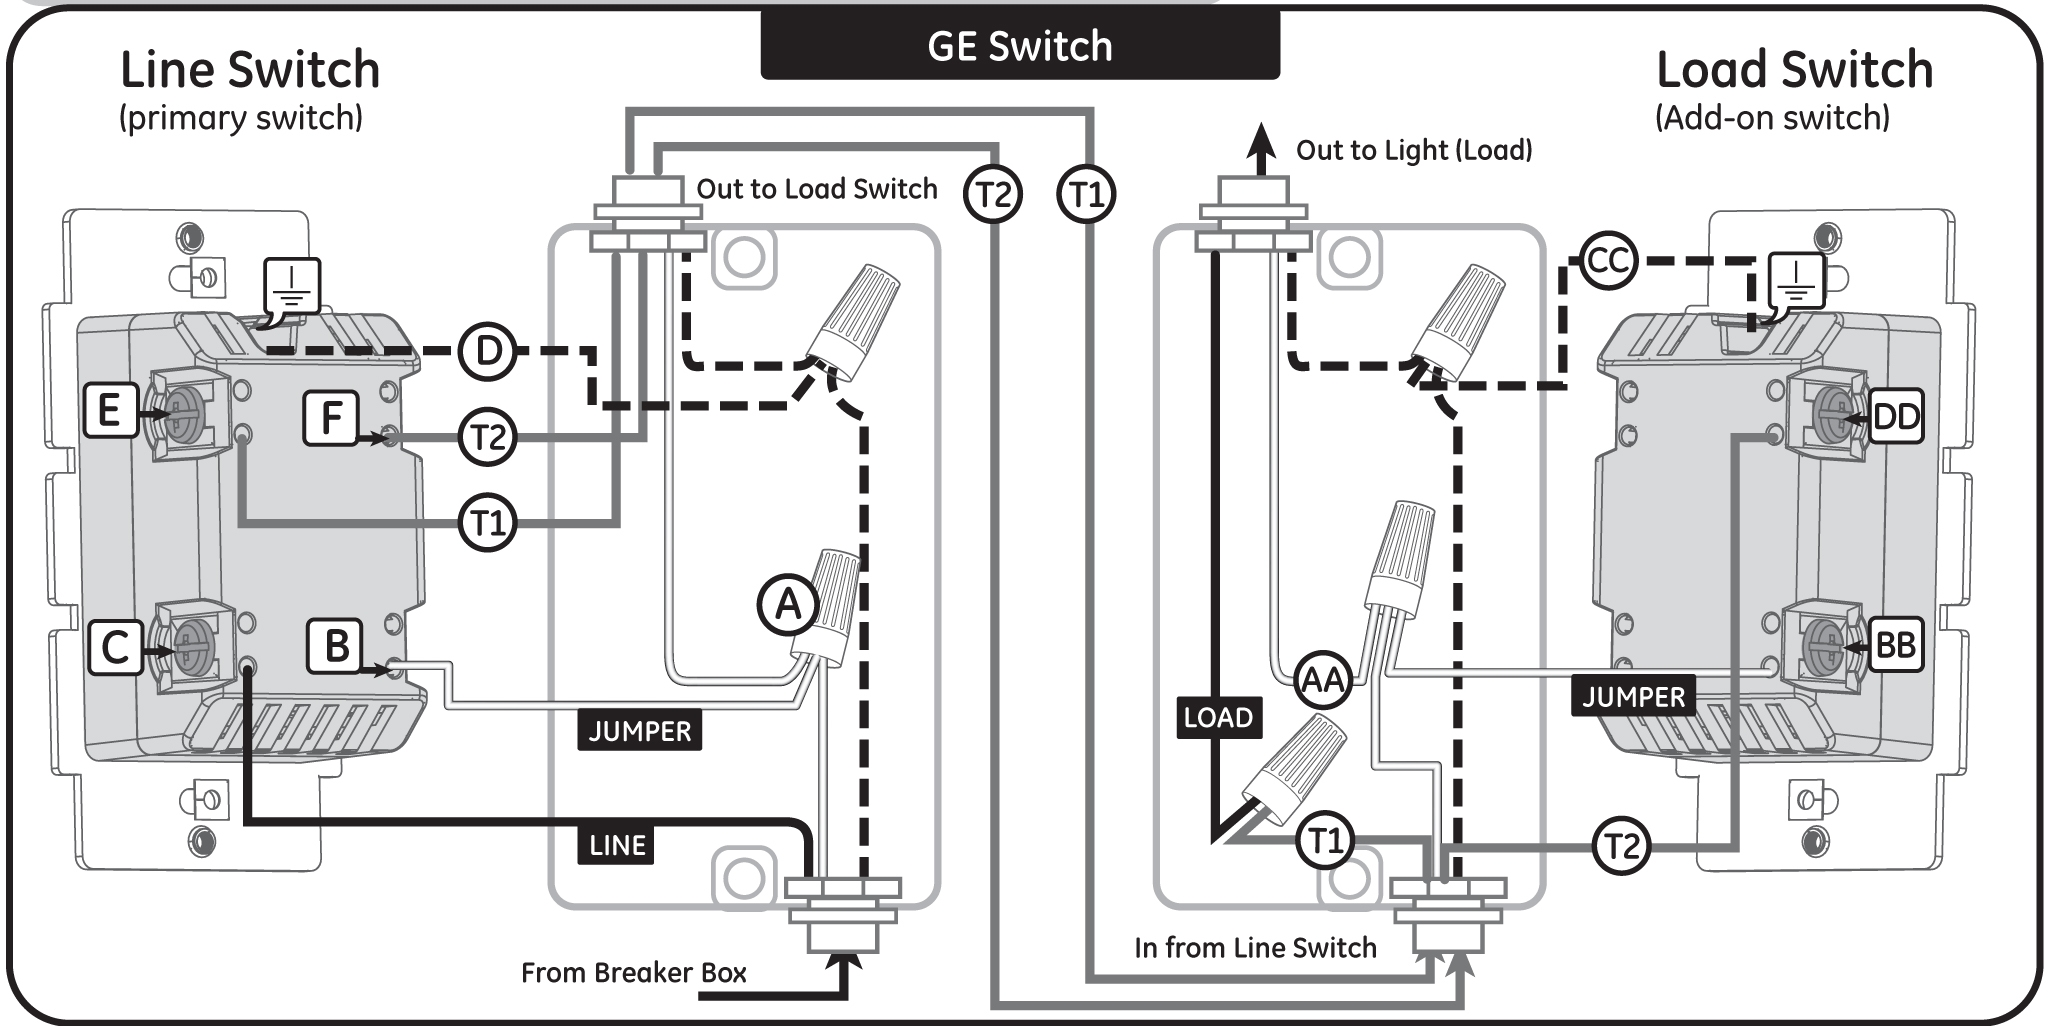 D603 Lutron 3 Way Dimmer Wiring Diagram